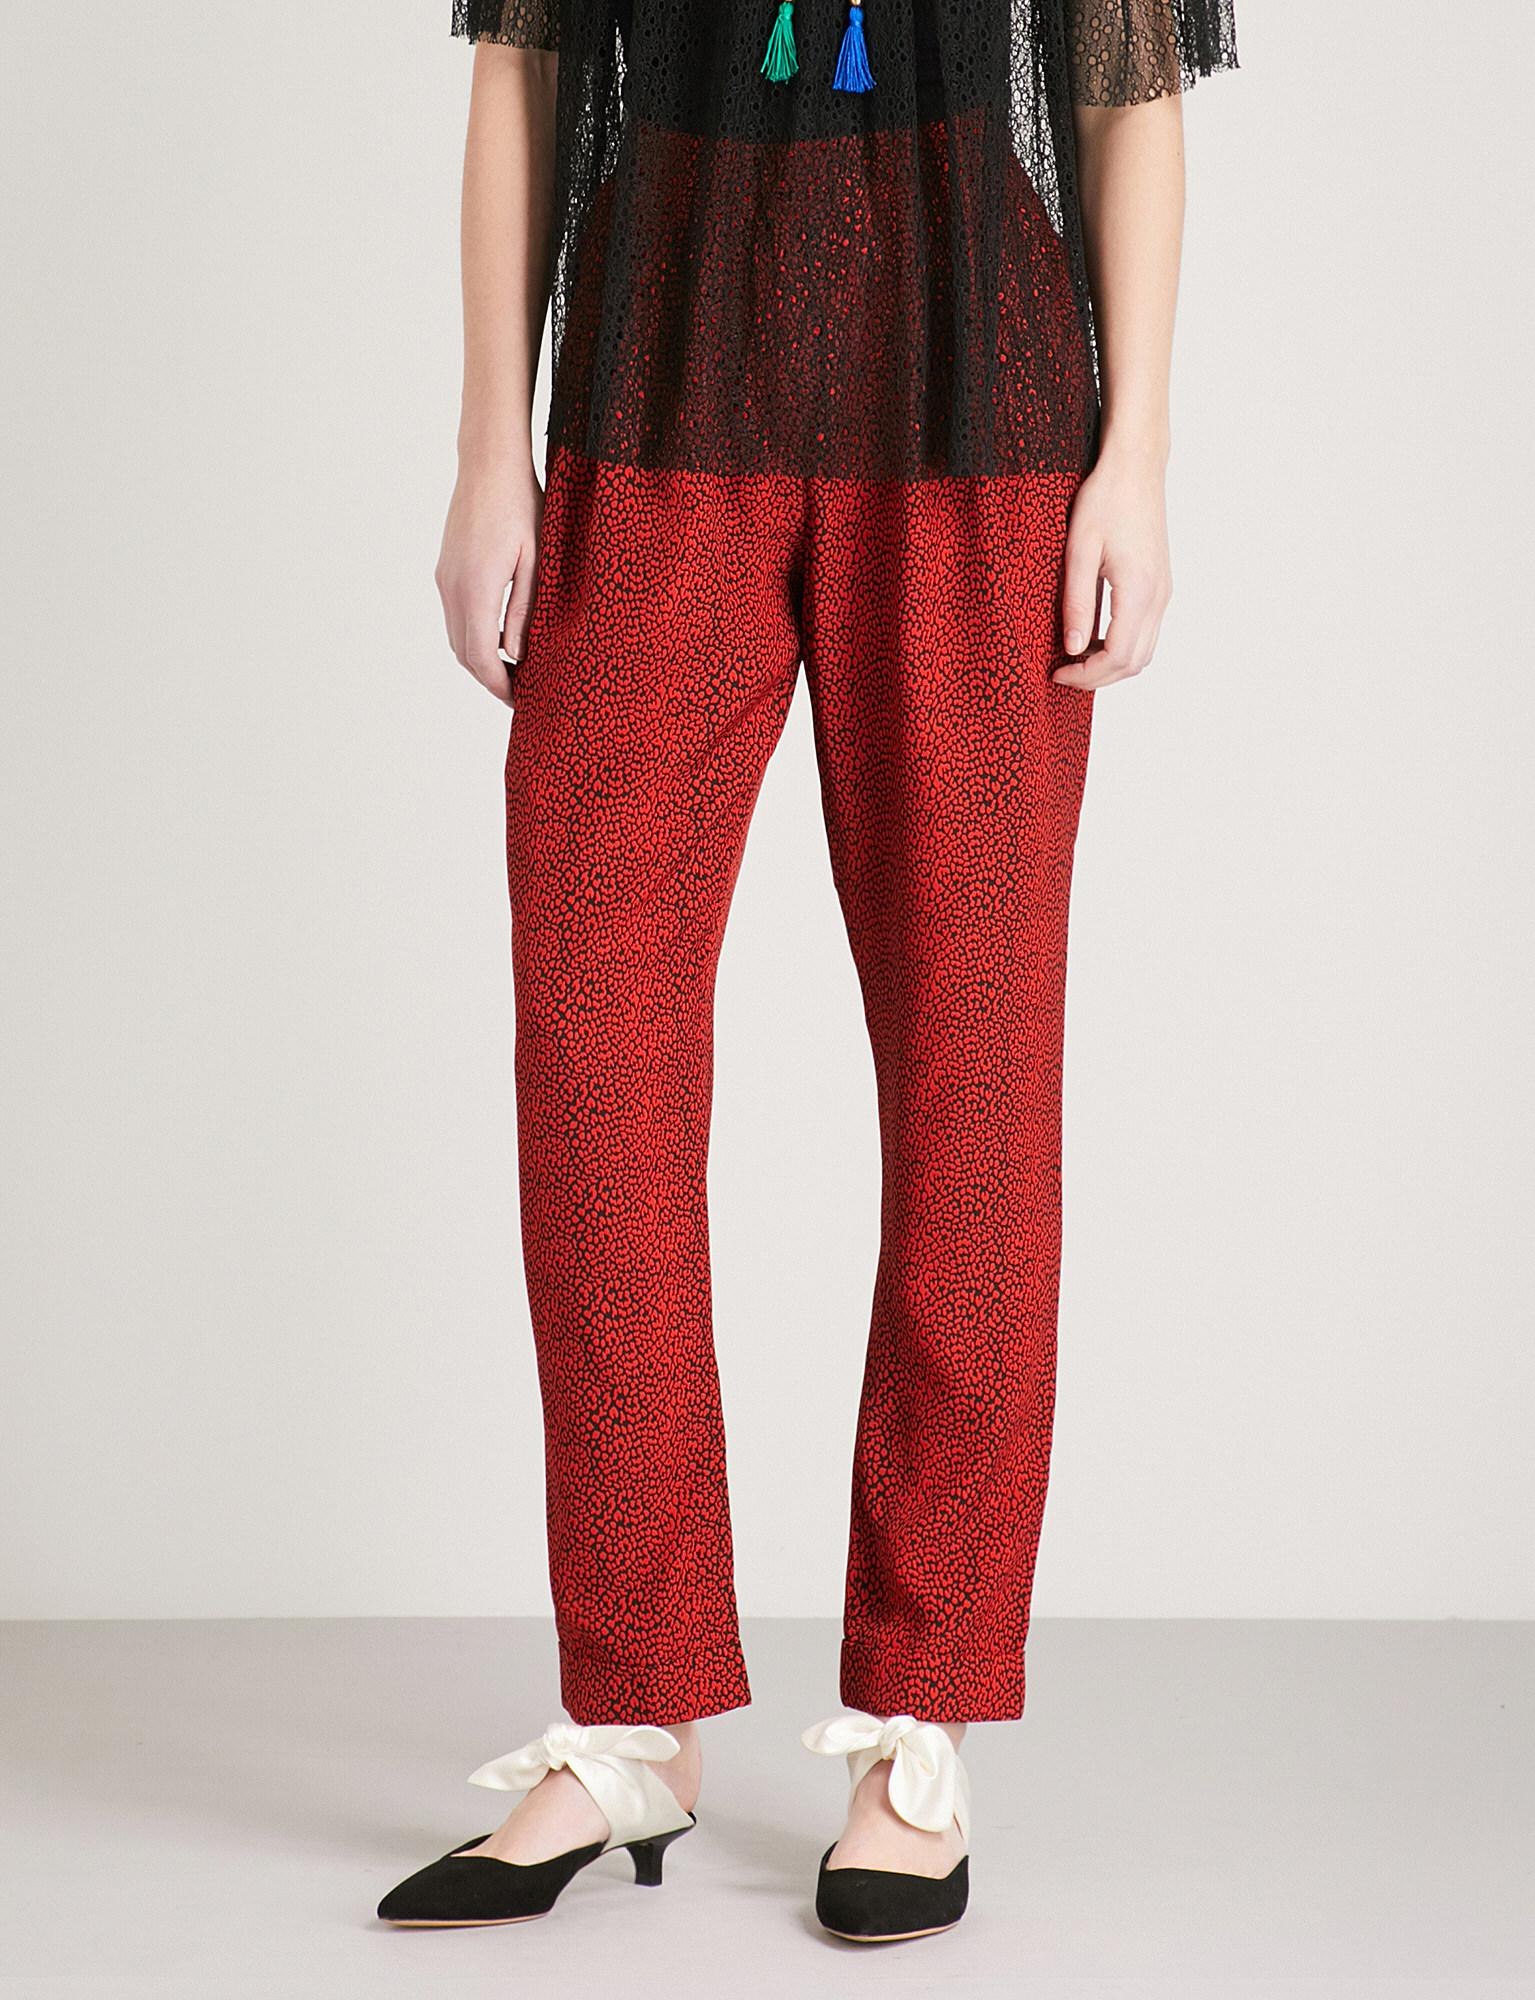 cropped straight trousers - Red Philosophy di Lorenzo Serafini 131I6a26